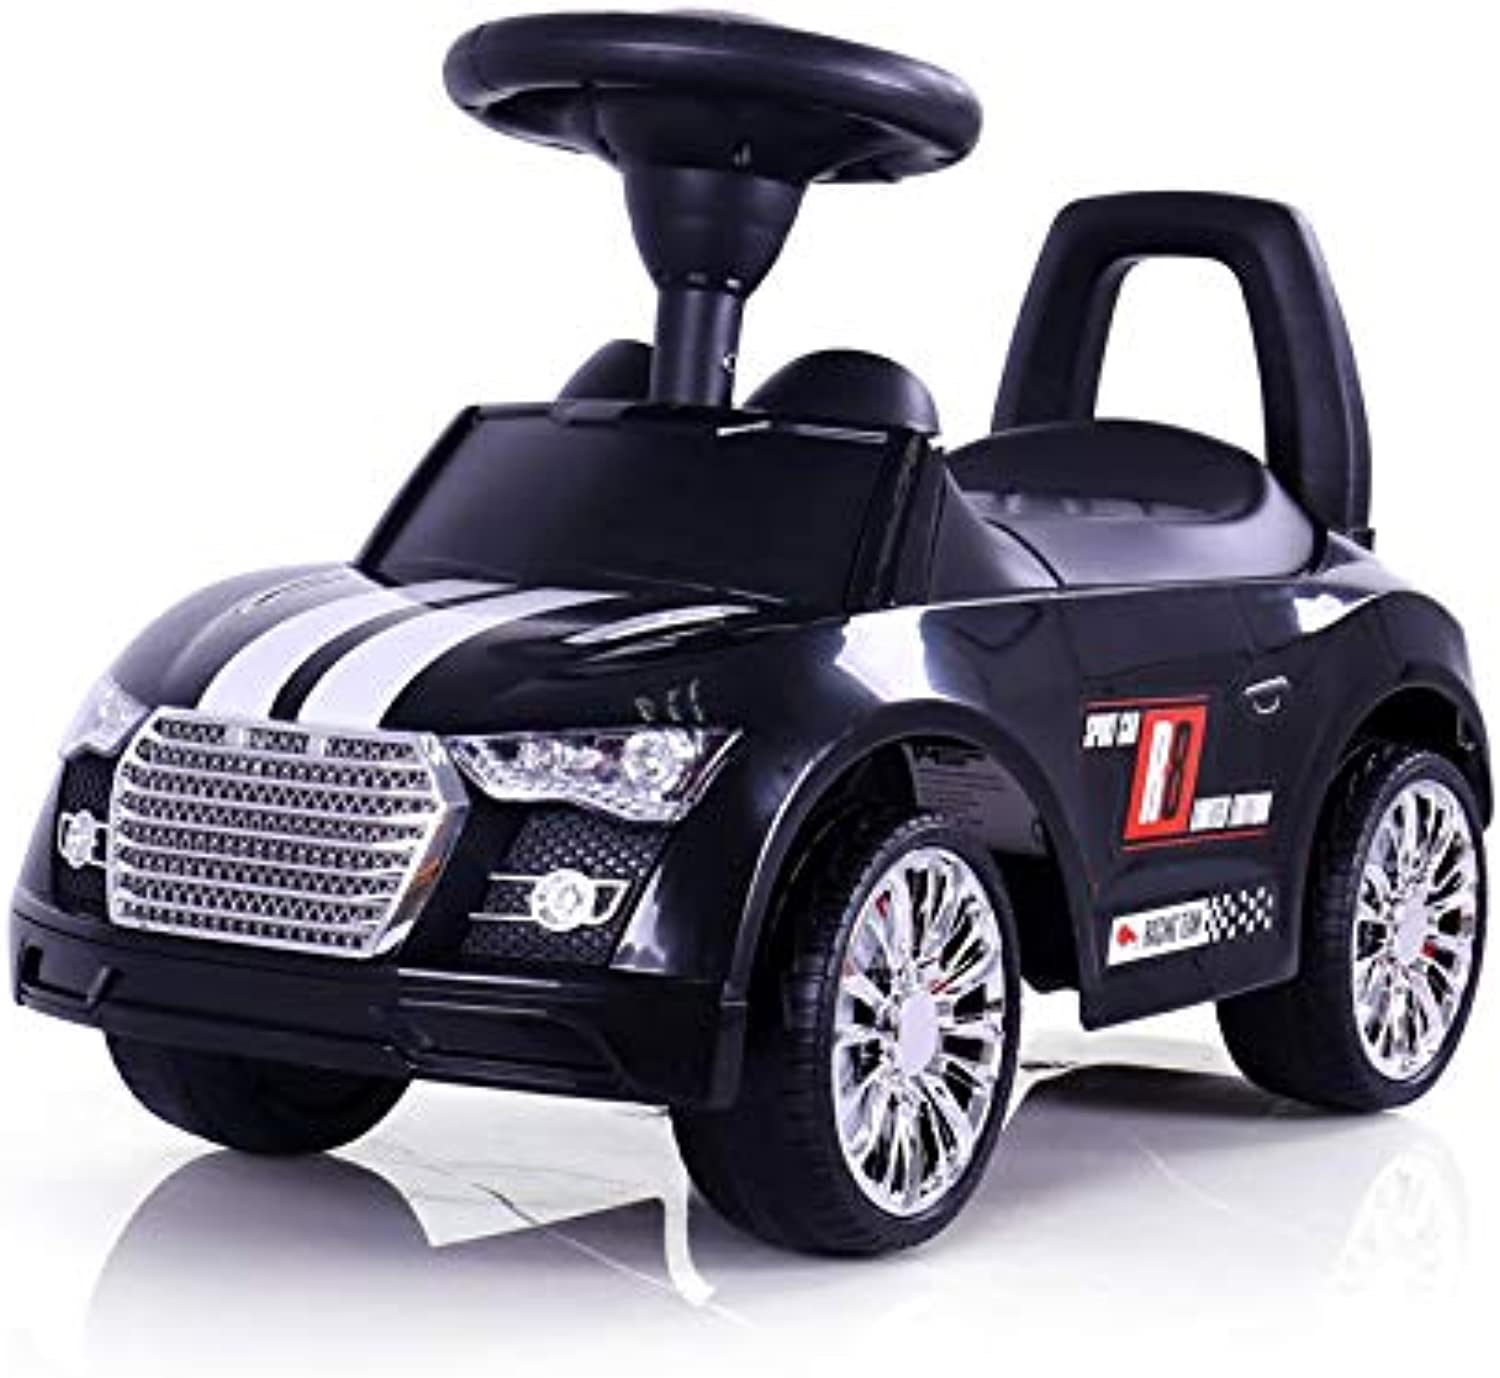 The Ride on for Your Little Racer, no Boring Design, This Racer Comes in Different Sporty Designs, Like a Real Sports car, color Black